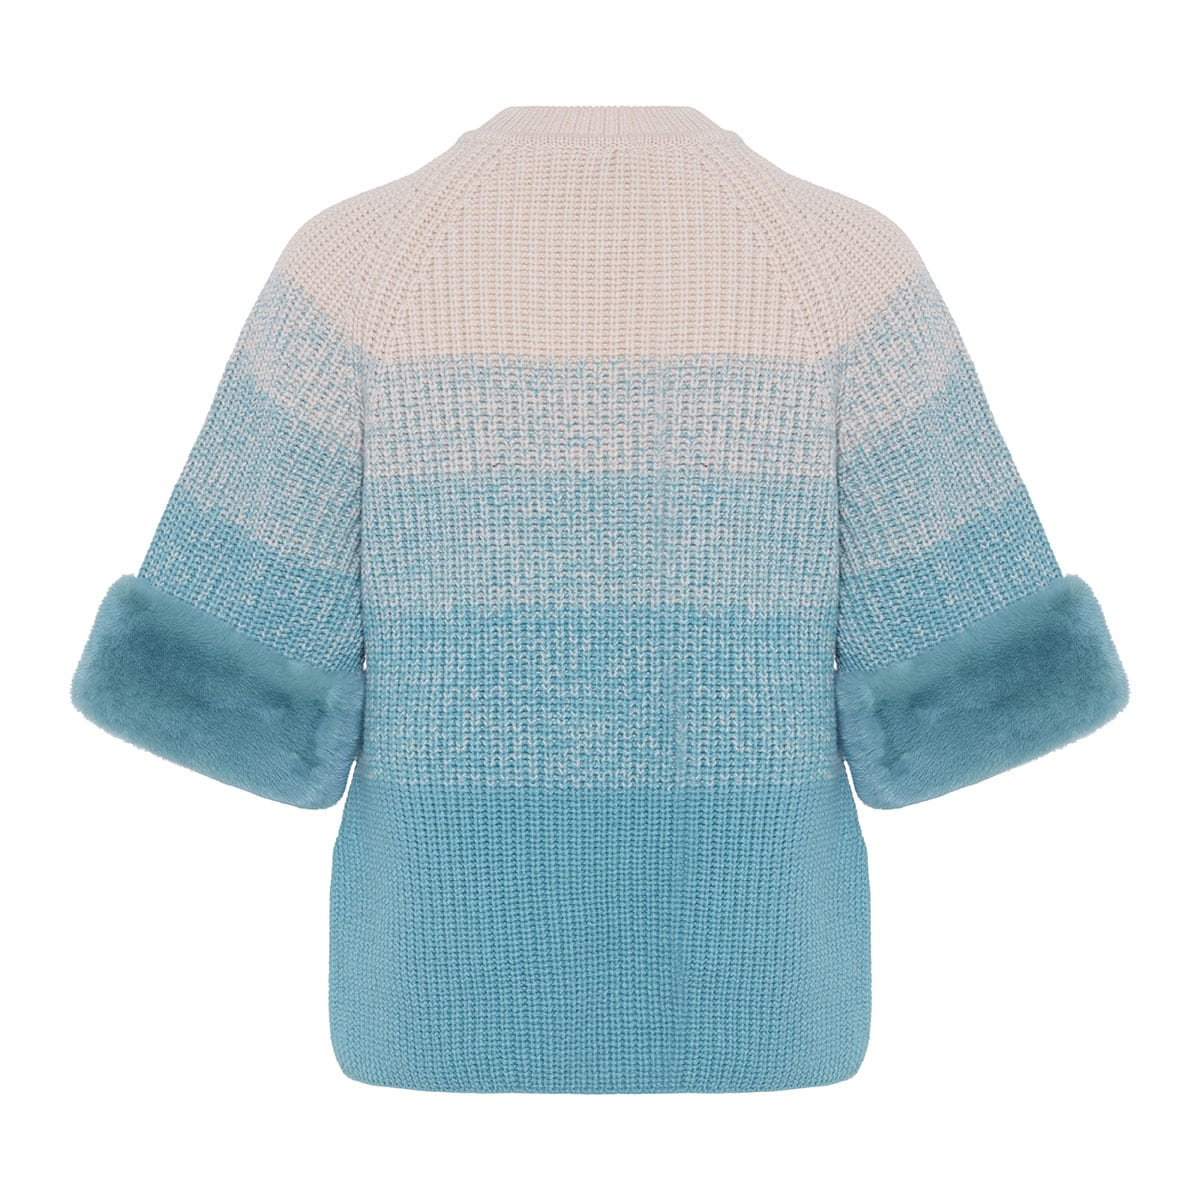 Fur-trimmed gradient knitted sweater